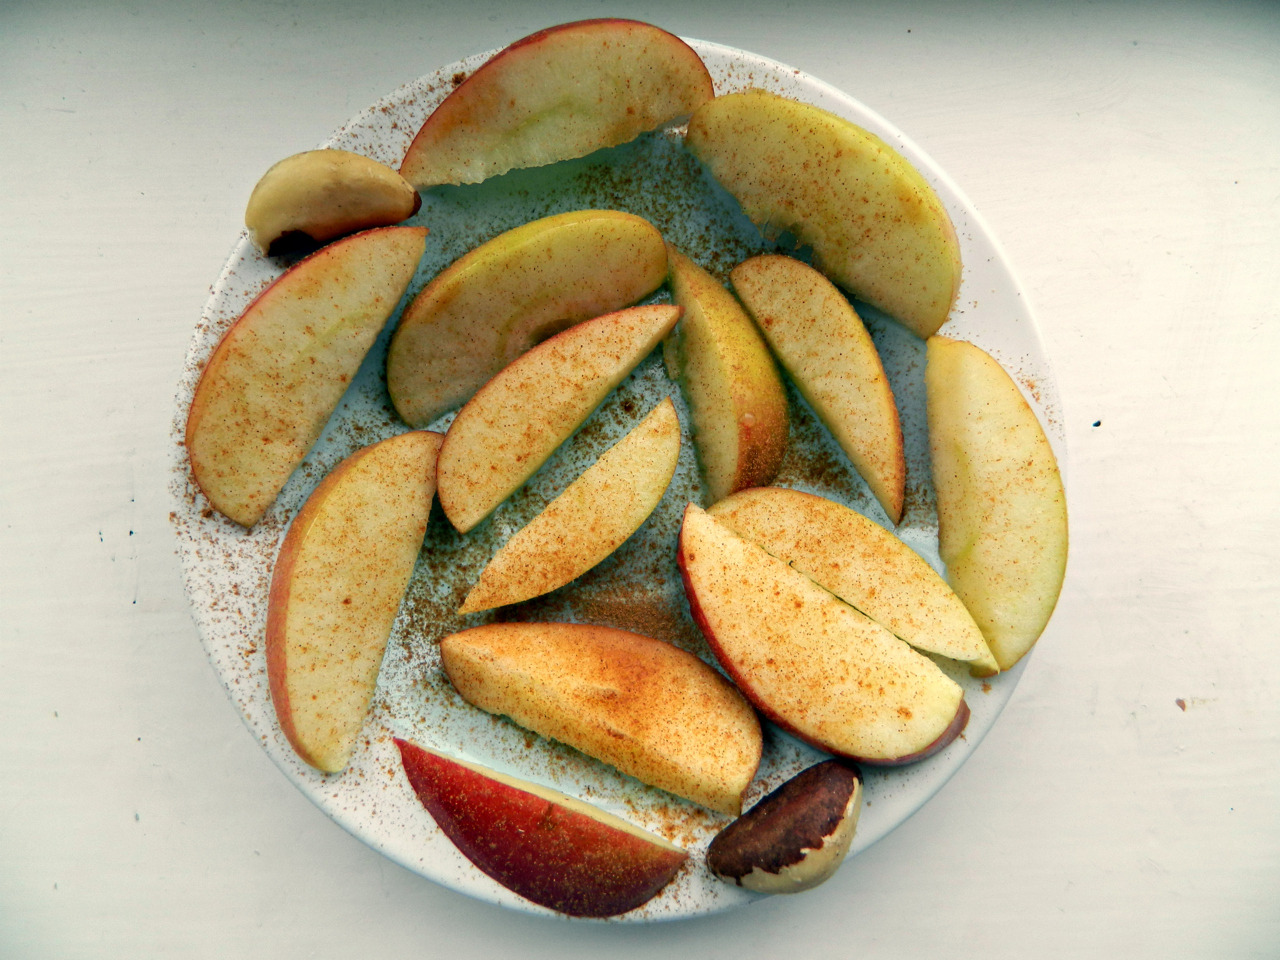 A chopped up braeburn apple with lemon juice, cinnamon and two Brazil nuts. I've recently stopped taking my multi-vitamin as my vitamin and mineral levels were perfectly healthy anyway! However I was a little low on selenium, hence the Brazils. 1oz of Brazil nuts contains 777% of your daily requirement! So two a day should be the limit, to not OD on selenium. :)